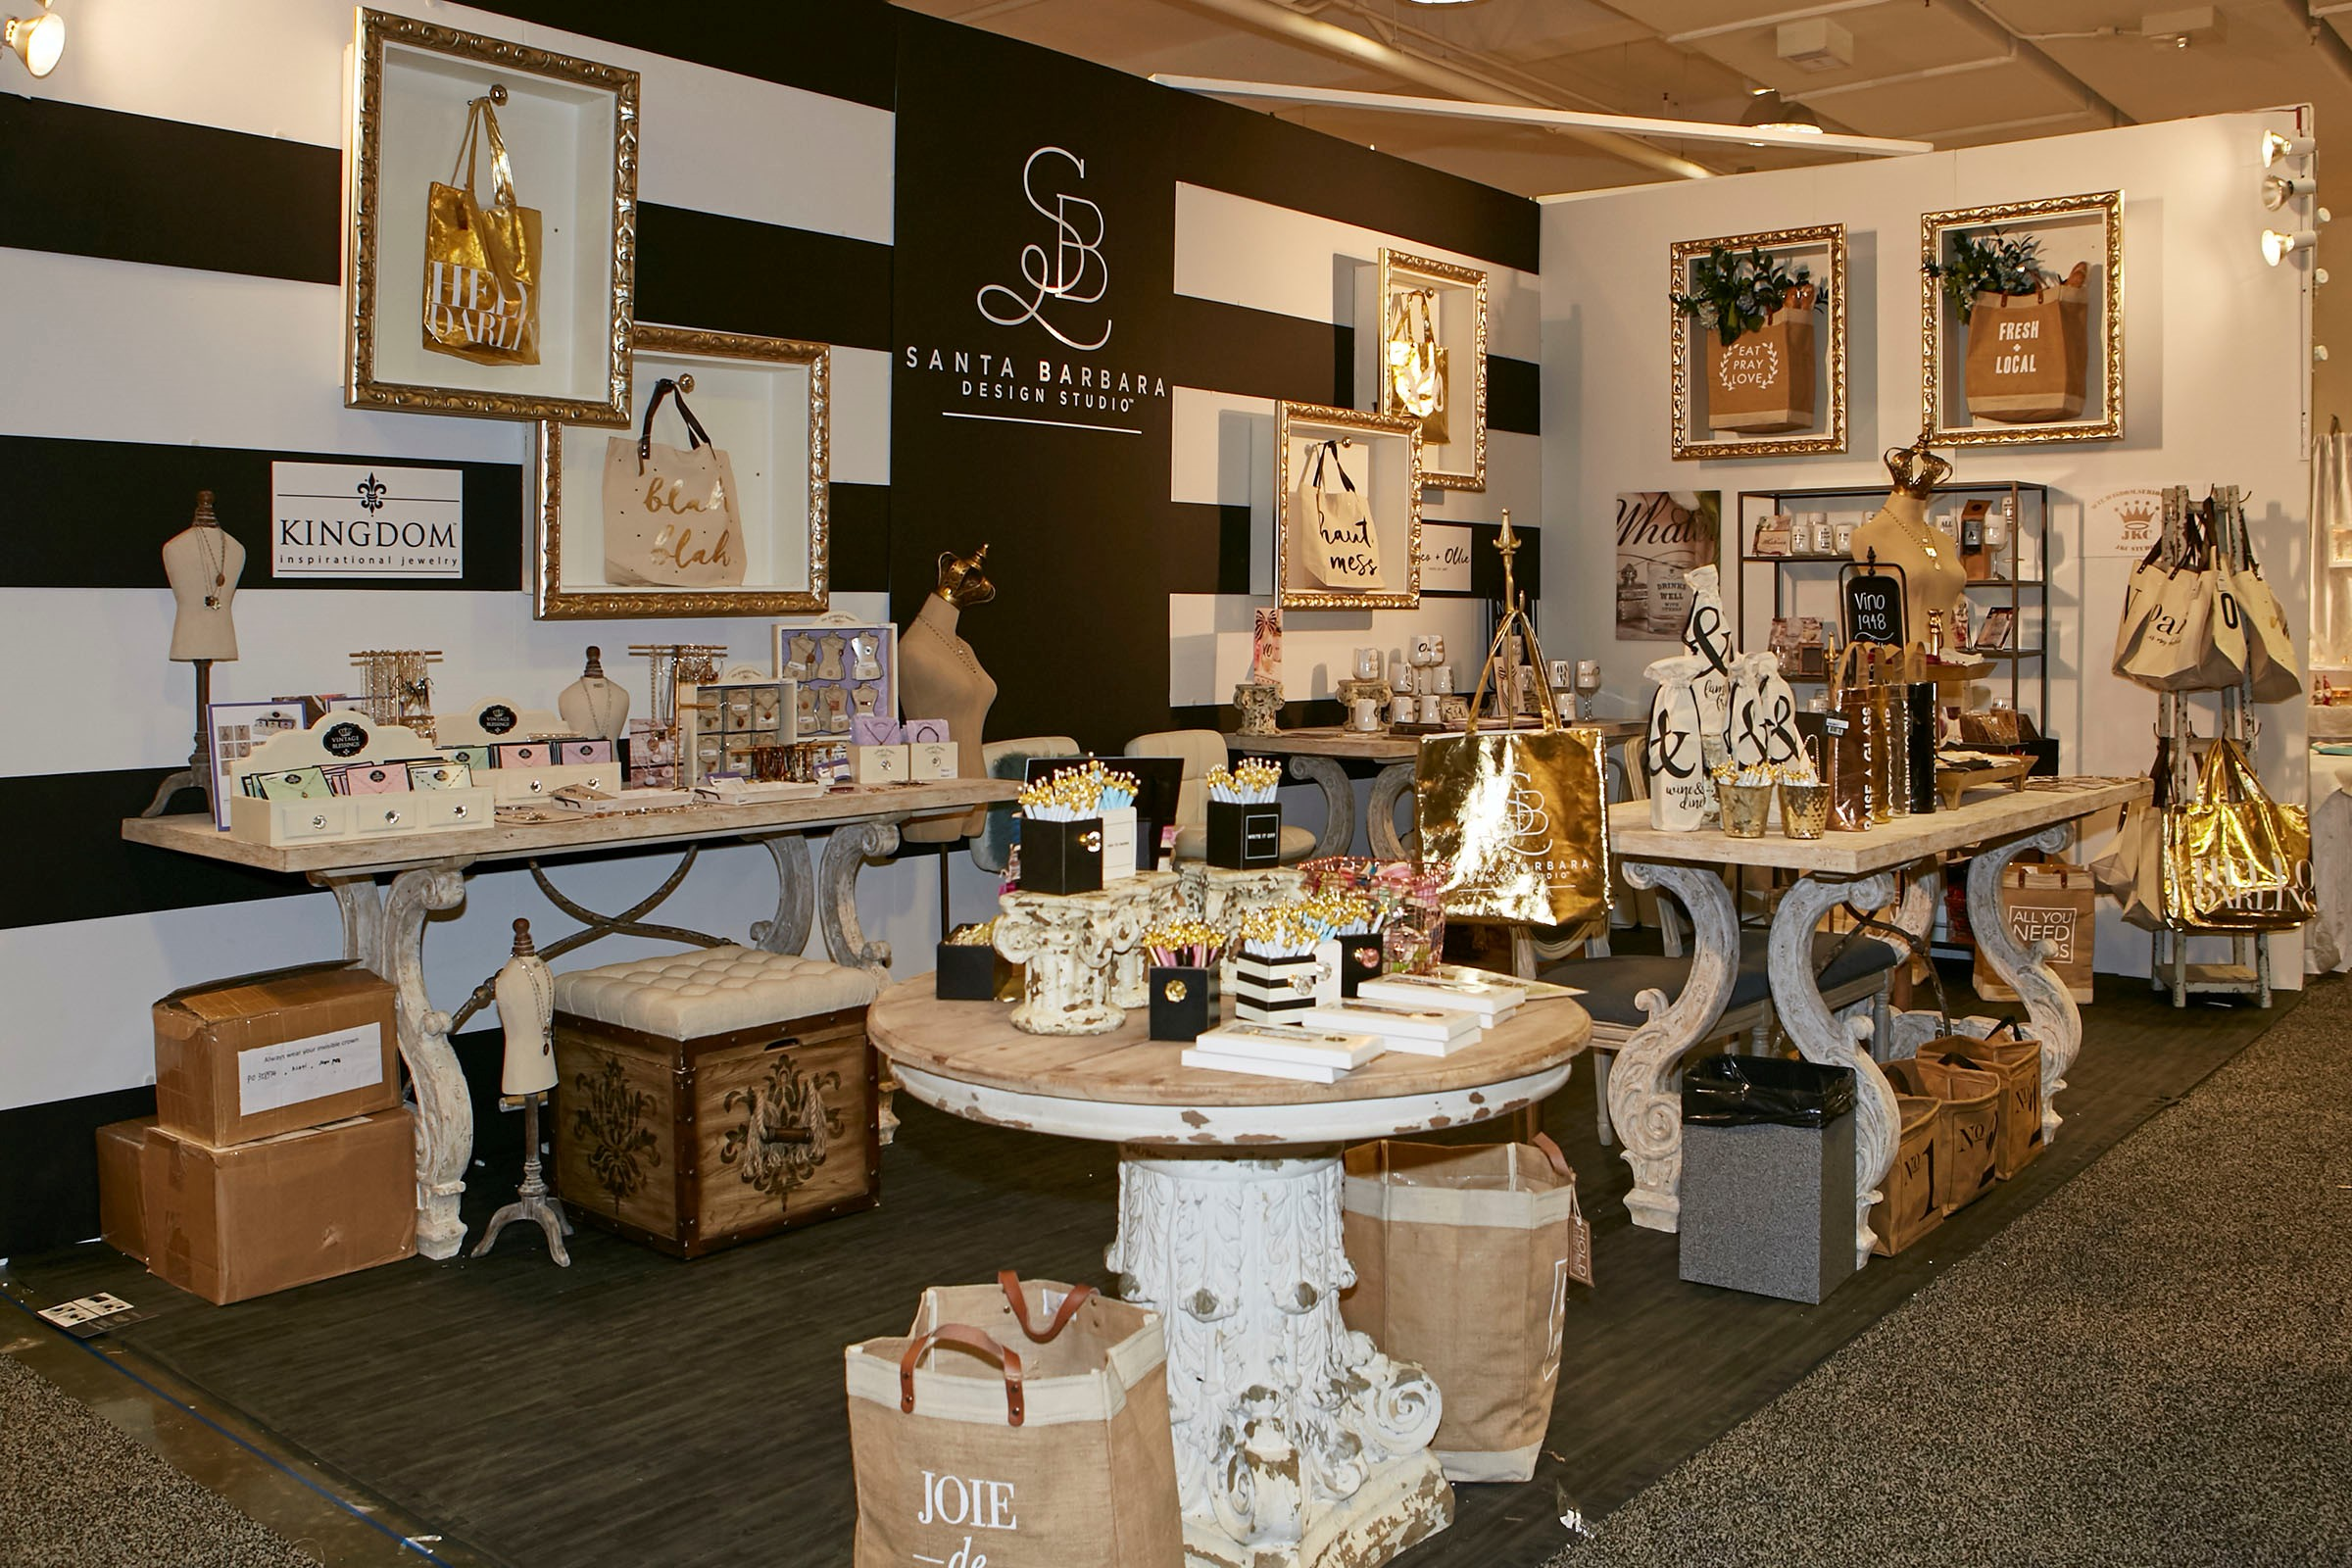 Santa Barbara Design Studio's Atlanta Temporary Booth Recognized with Best of Category For Outstanding Visual Display Award, Sponsored by AmericasMart